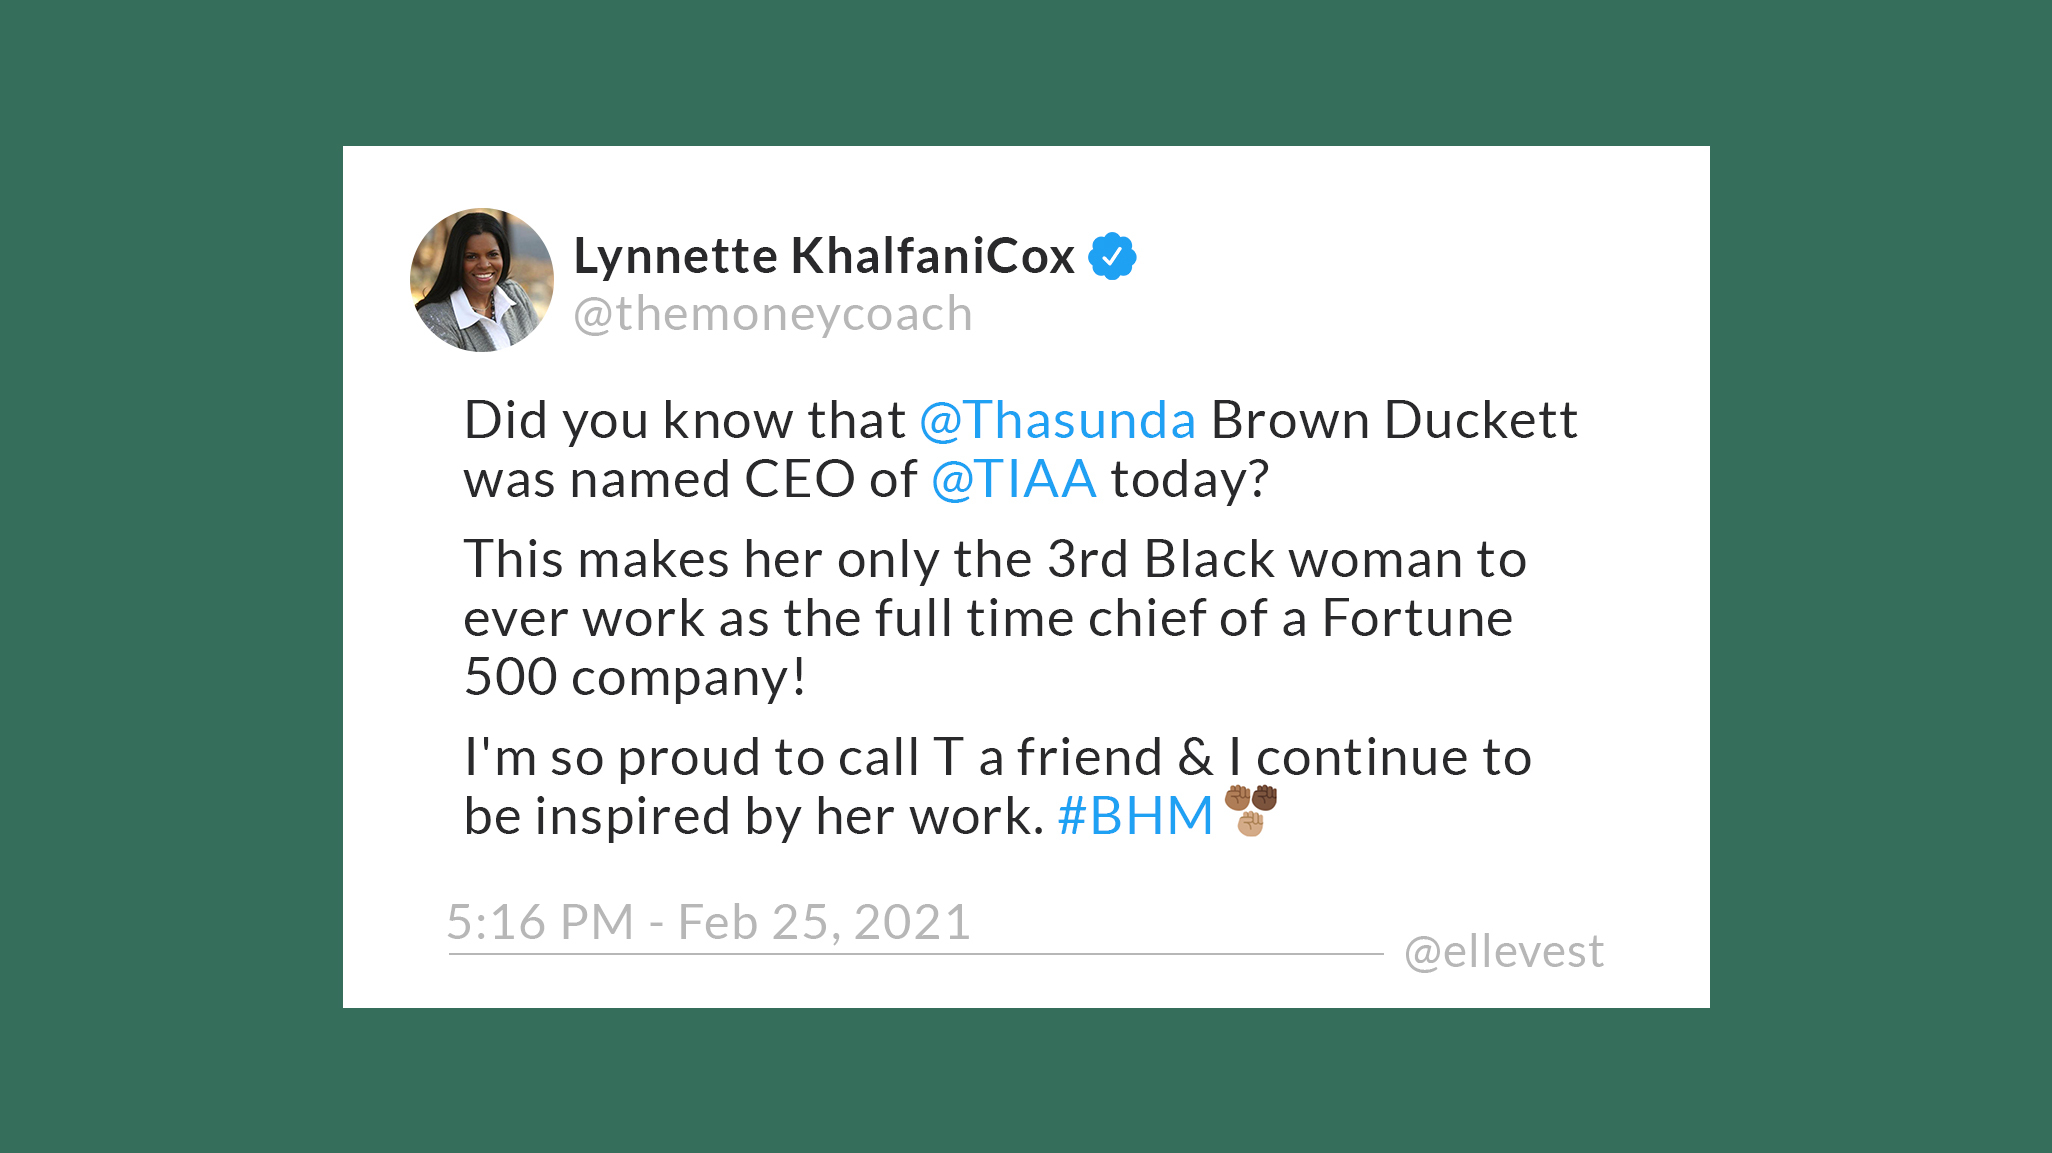 A tweet by Lynnette Khalfani Cox, The Money Coach, on Thasunda Brown Duckett, who was named CEO of TIAA, becoming the third black woman ever to head a Fortune 500 company, and the second one in the current list.